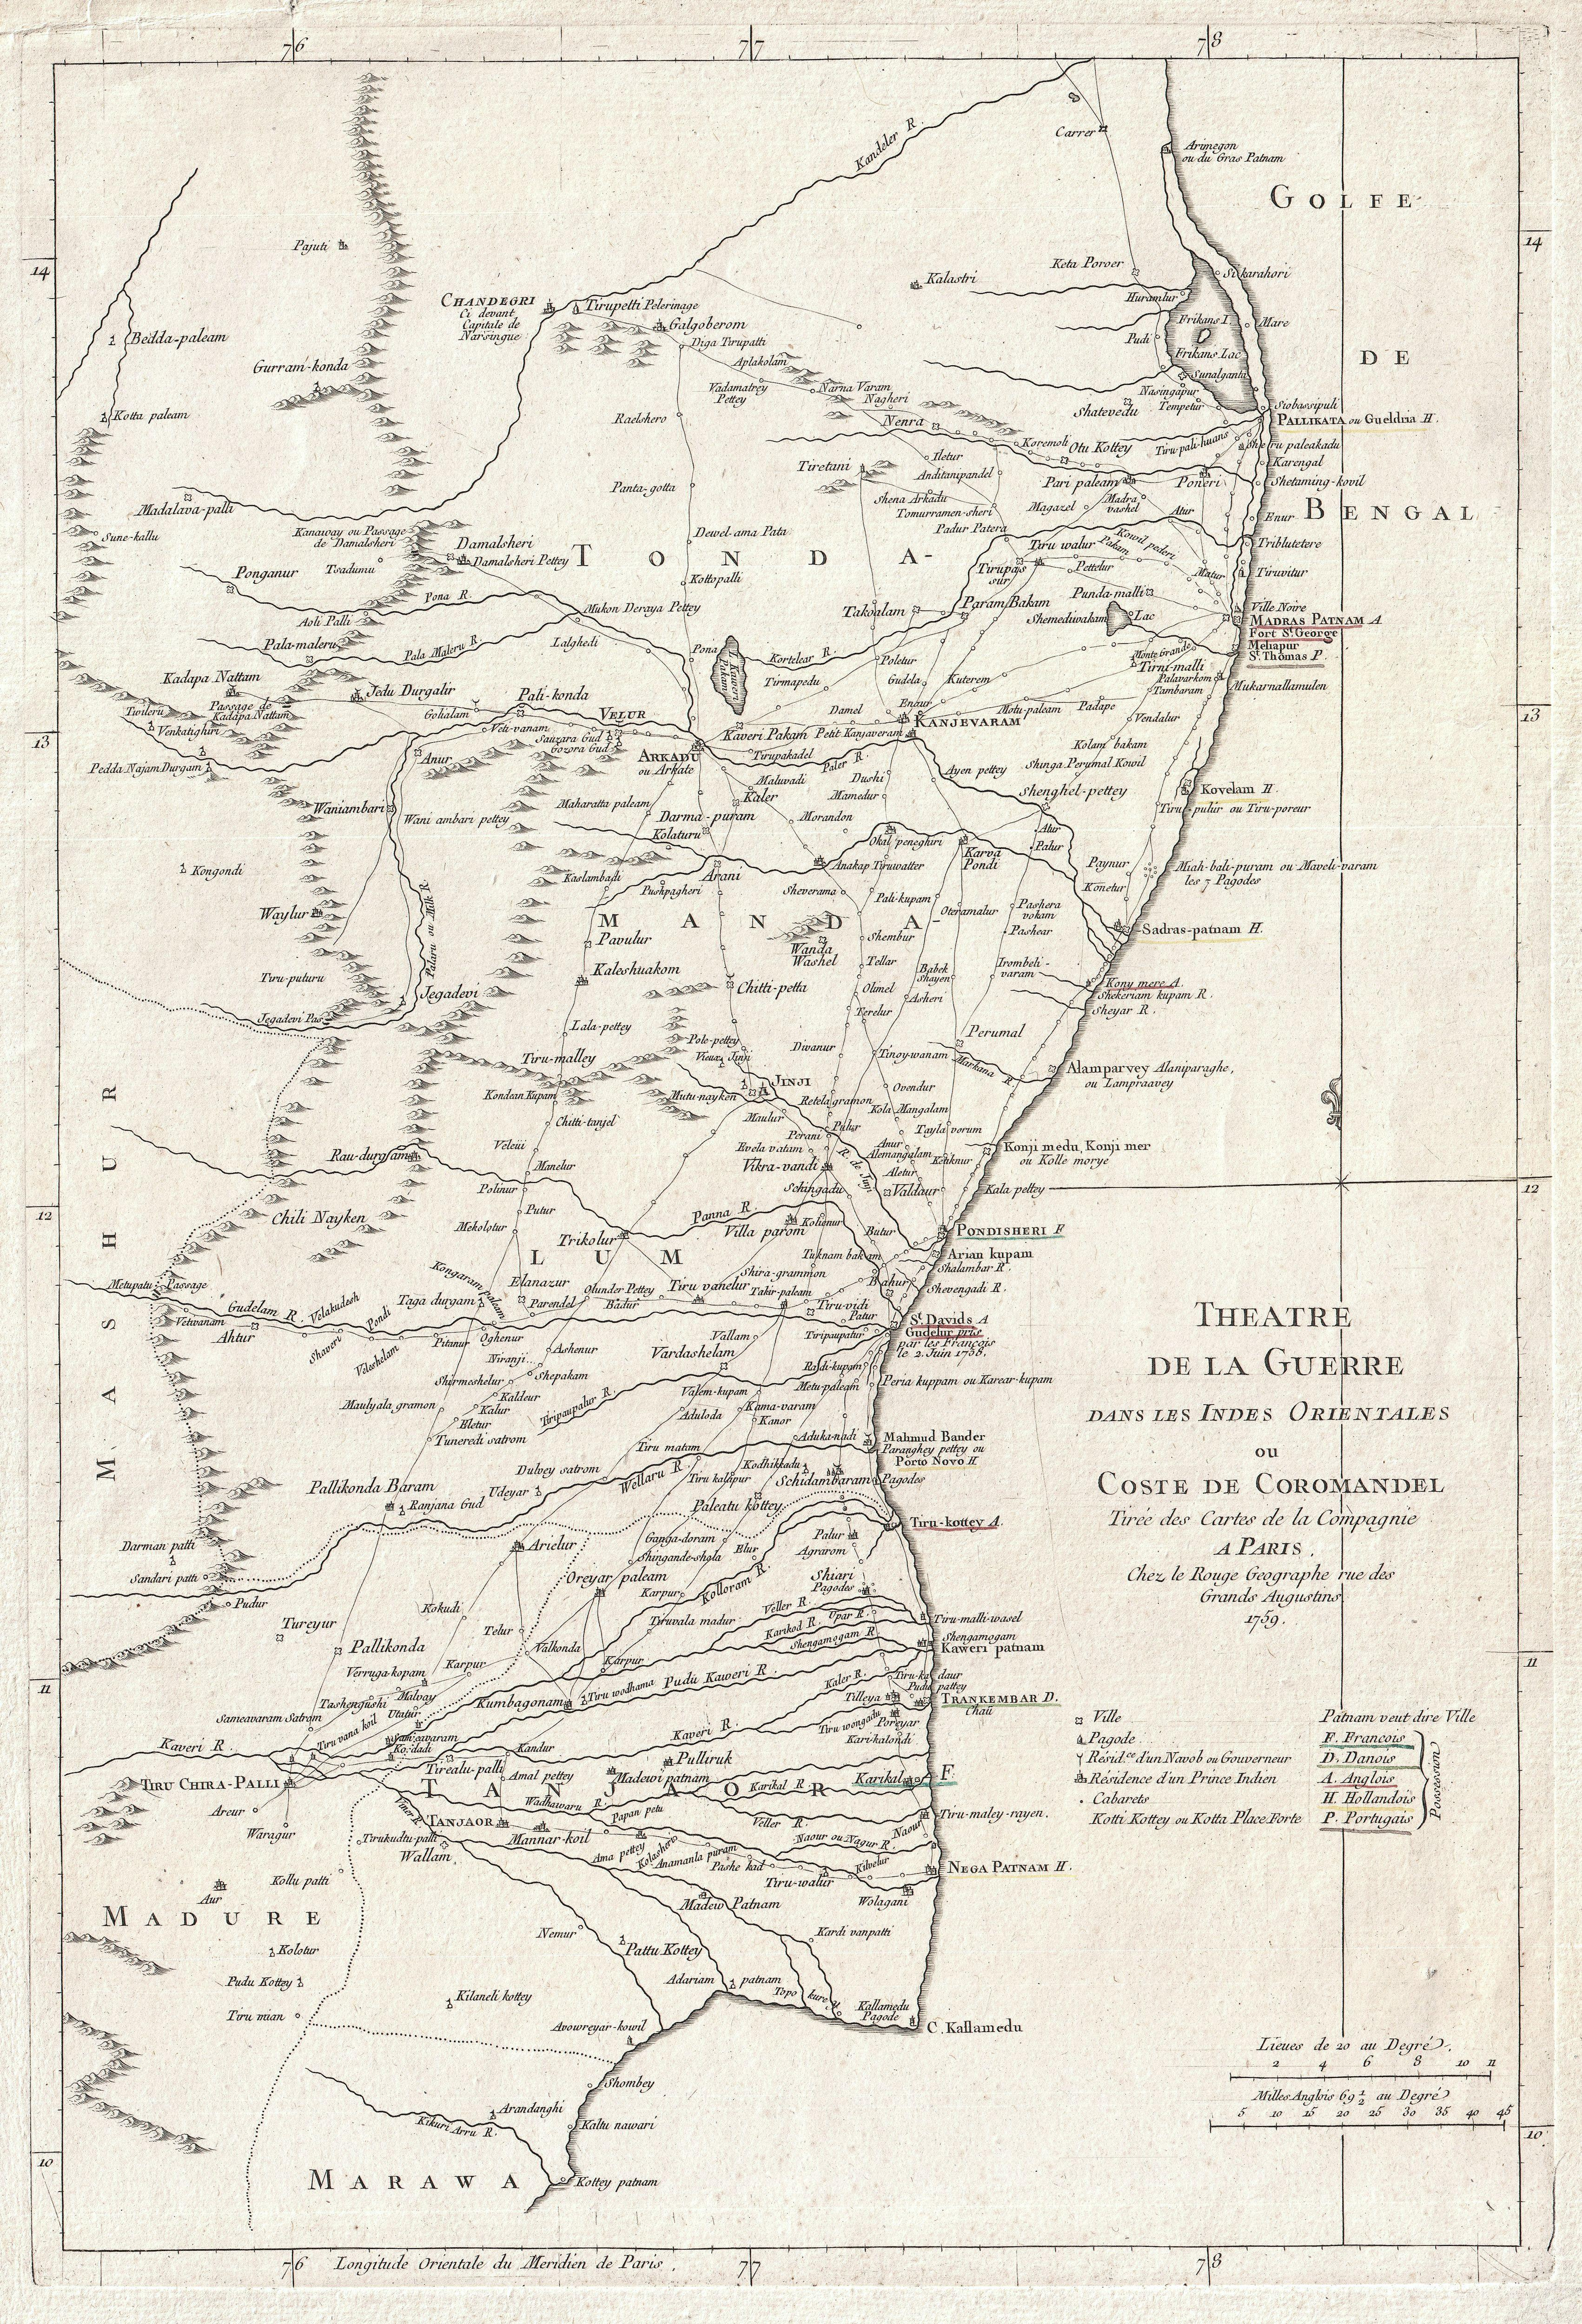 Madras India Map.File 1759 La Rouge Map Of Eastern India Or Coromandel Madras And